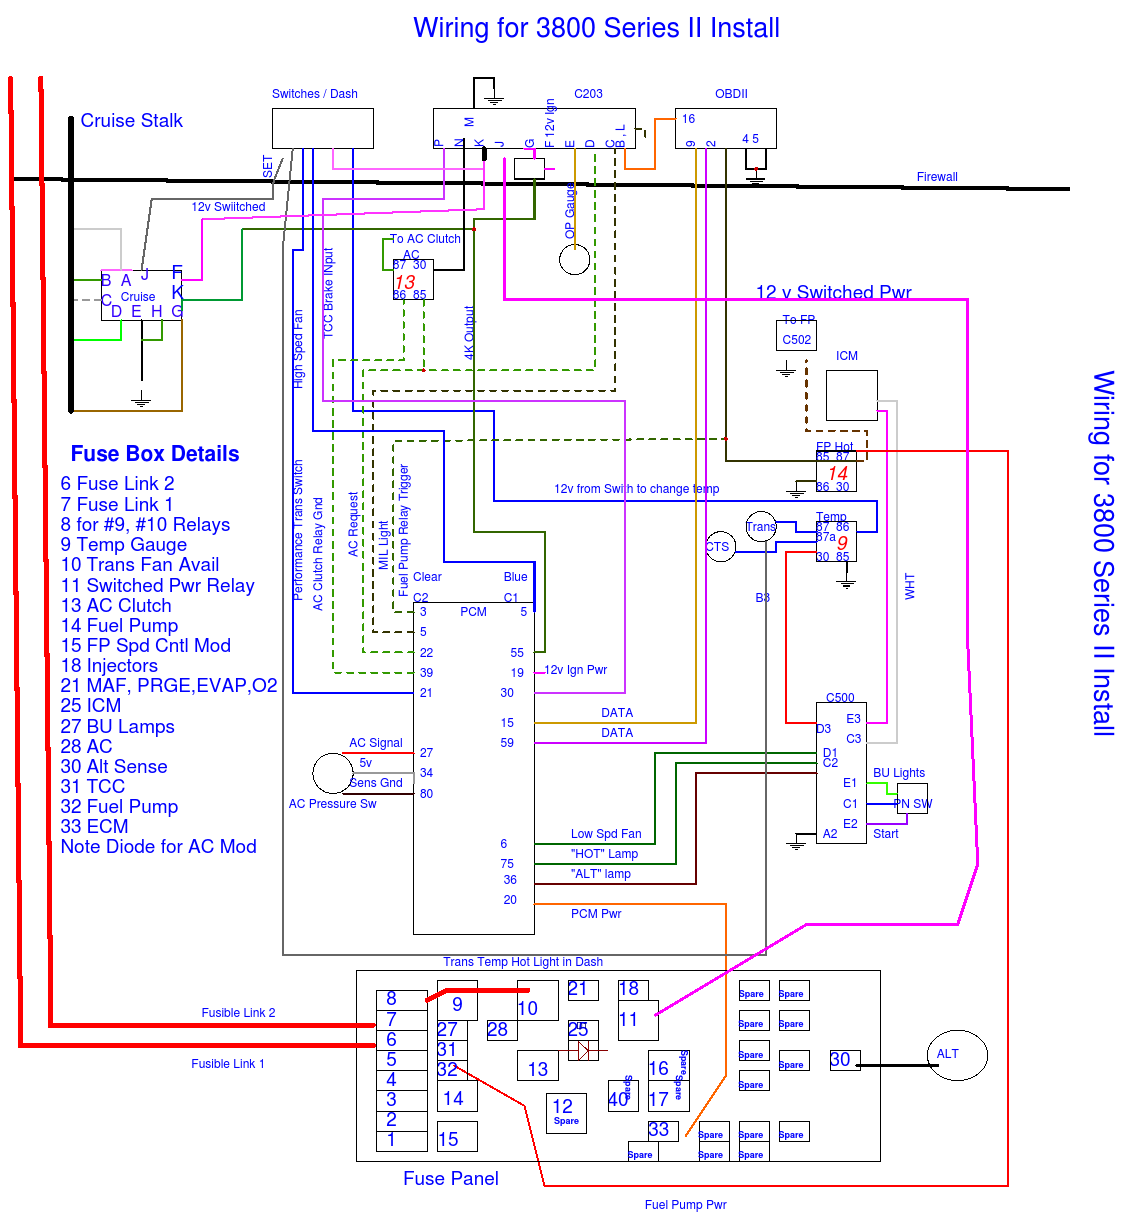 3800_Series_II_Wiring_B 94114383e10345ecab416fa0c37580bf 3800 series 2 wiring diagram wiring diagrams 3800 series 2 stand alone wiring harness at panicattacktreatment.co